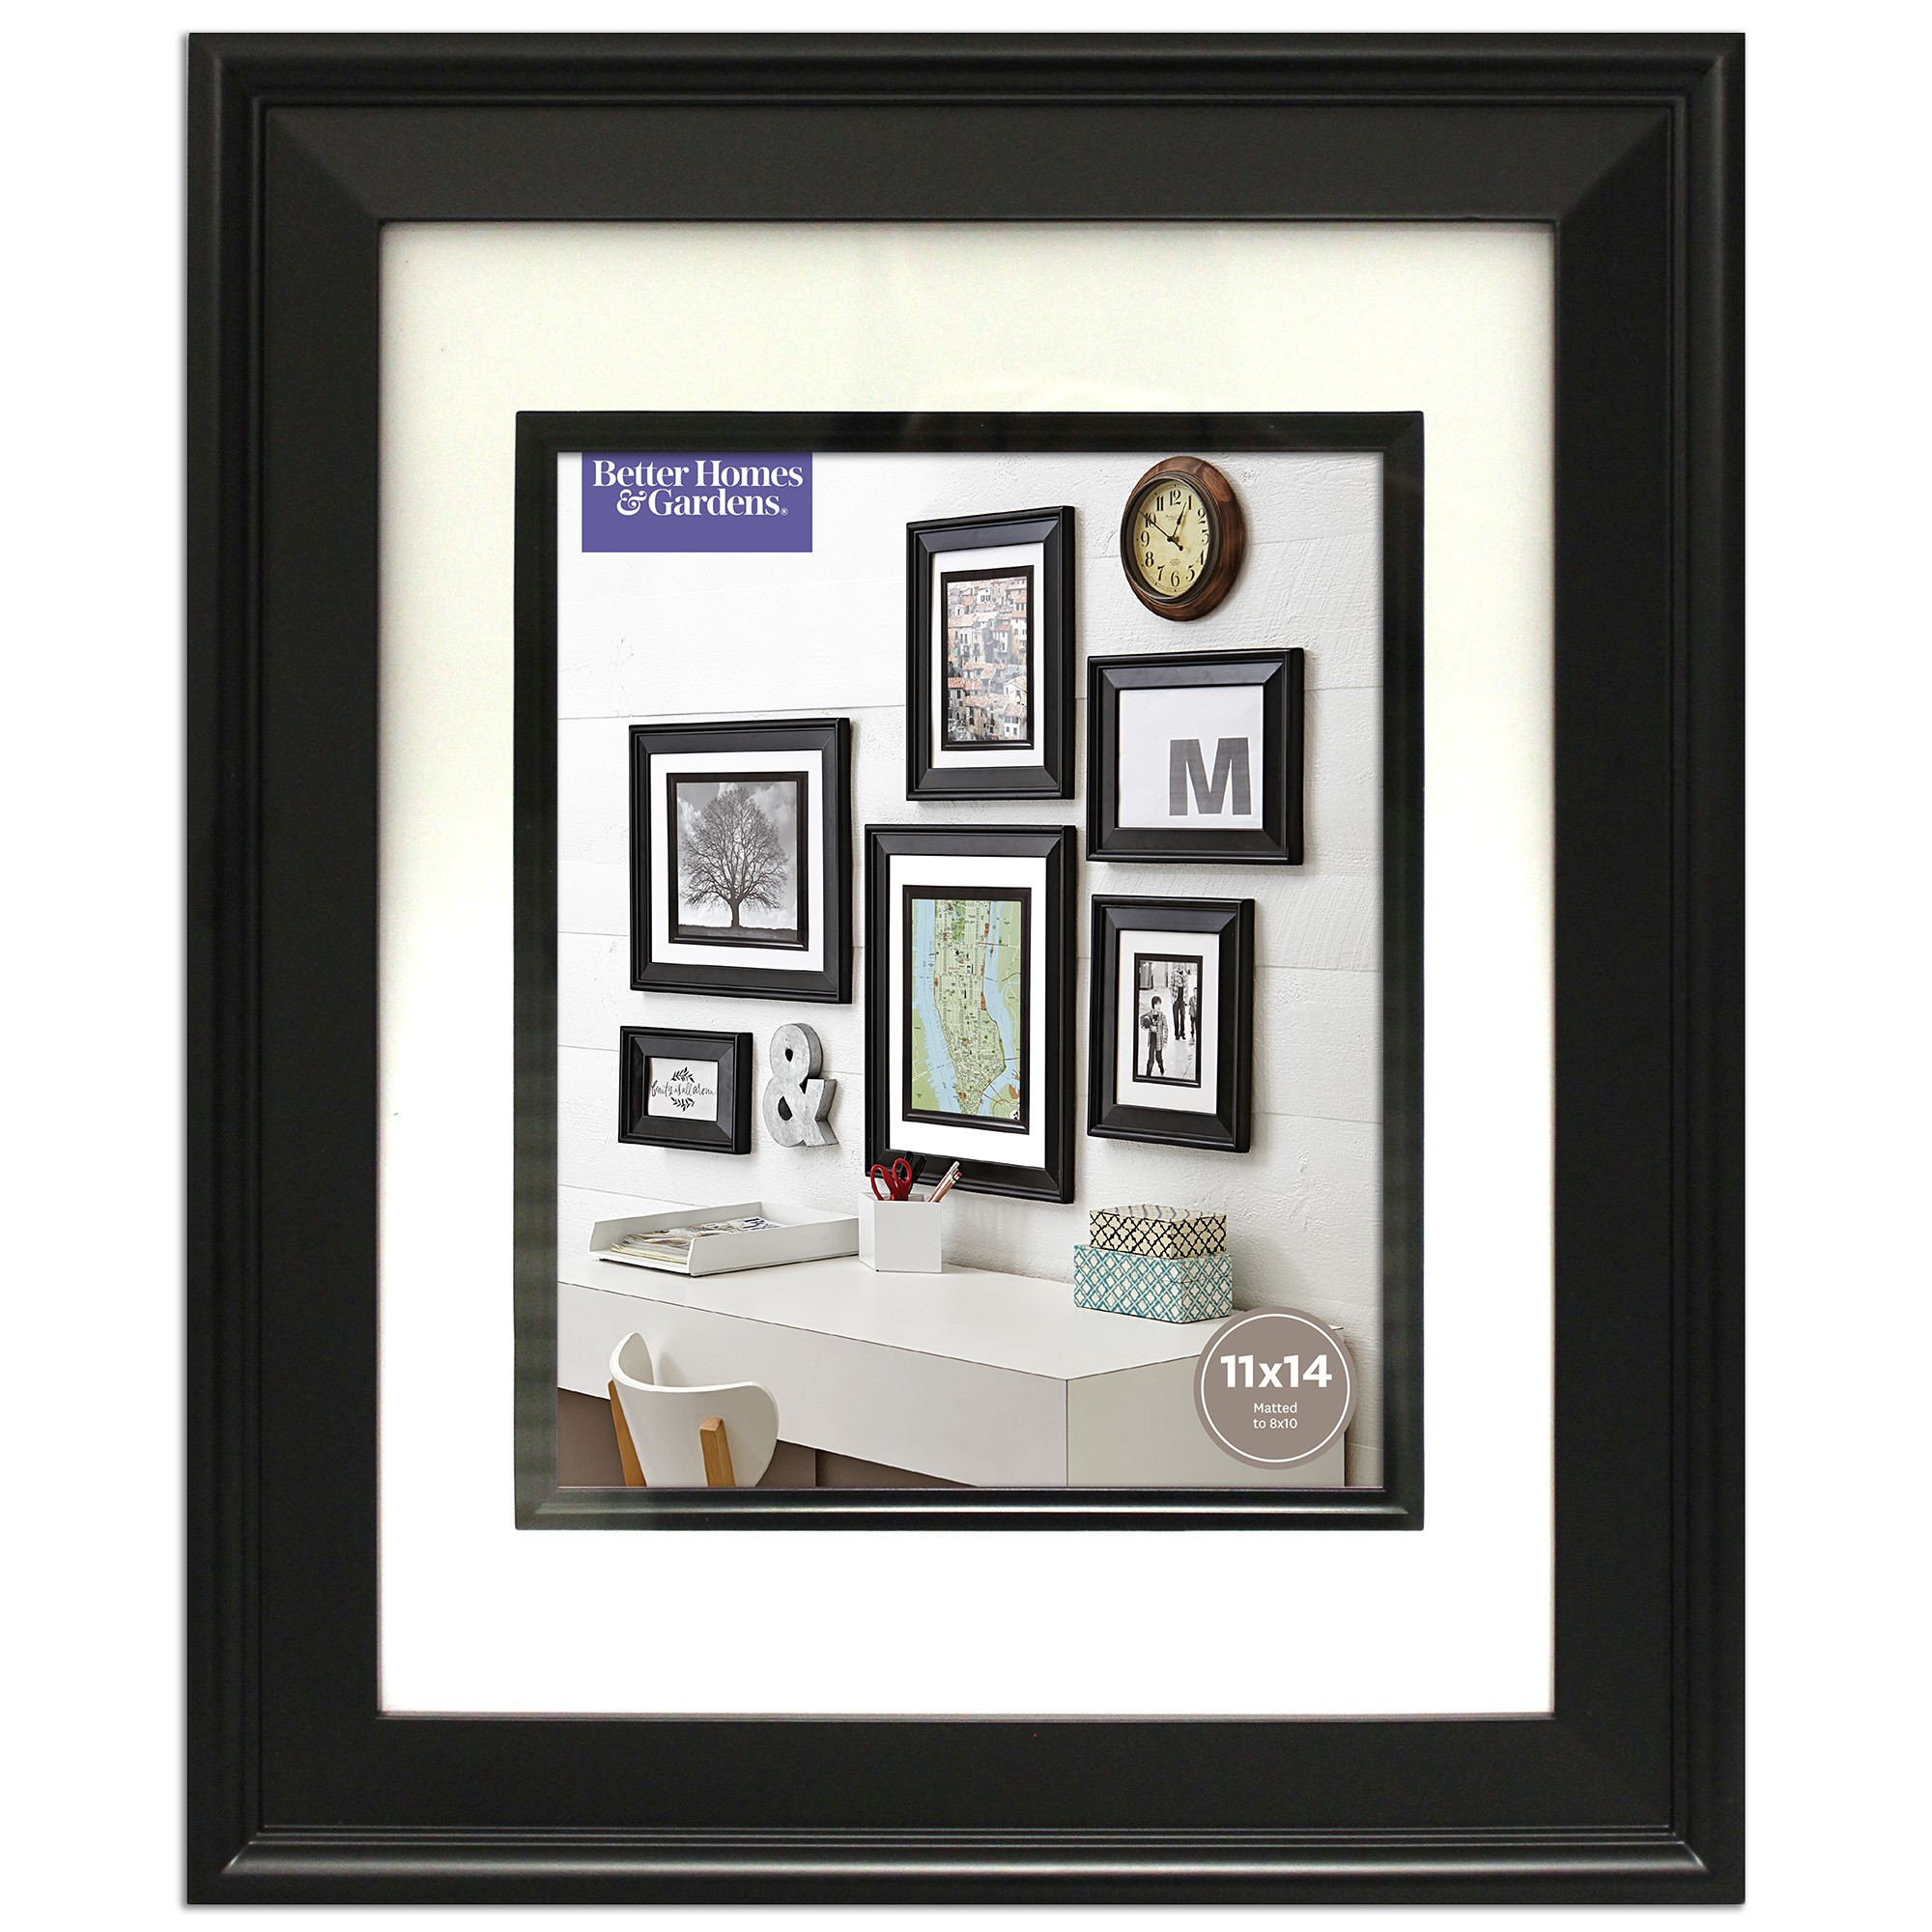 Better Homes and Gardens 11x14 Beveled Picture Frame, Black by Harbortown Industries